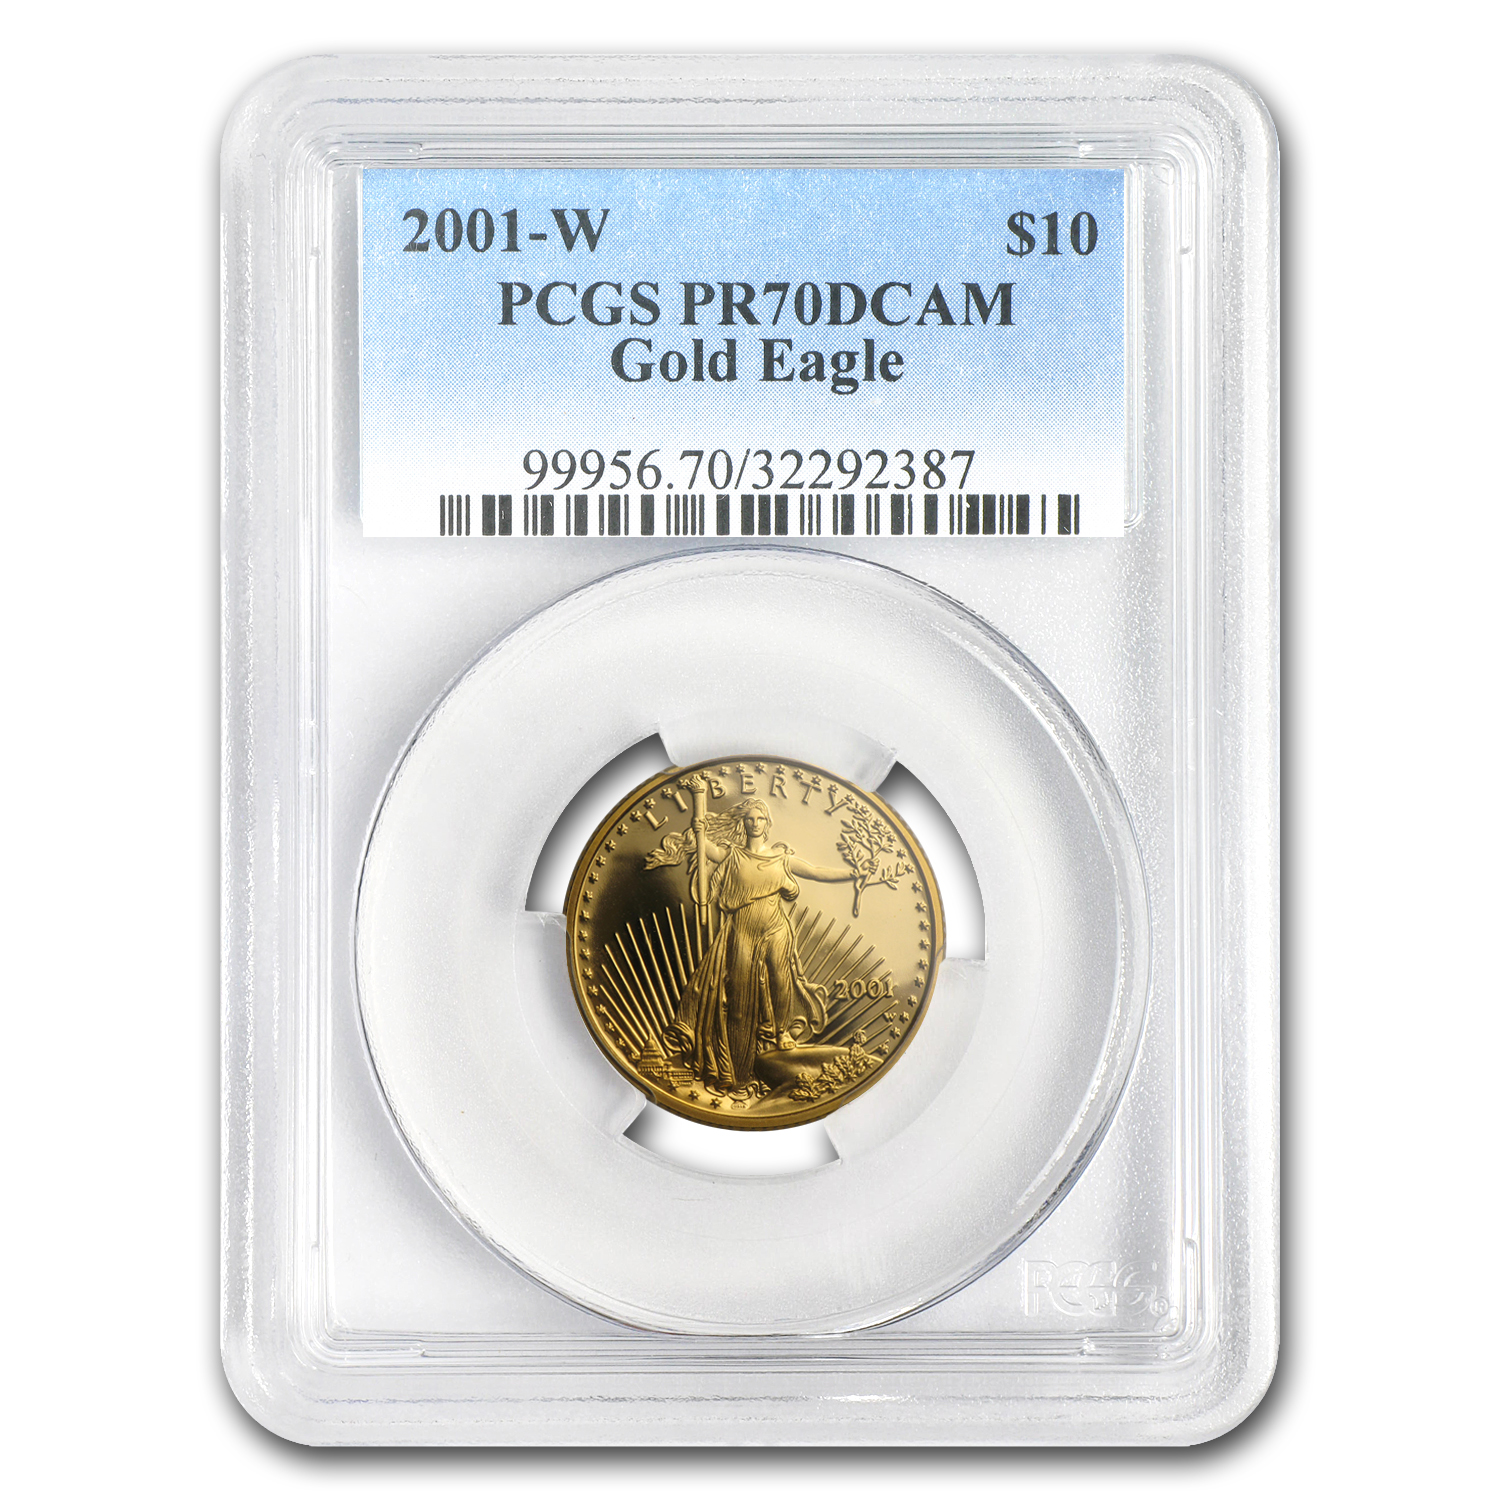 2001-W 1/4 oz Proof Gold American Eagle PR-70 PCGS (Registry Set)